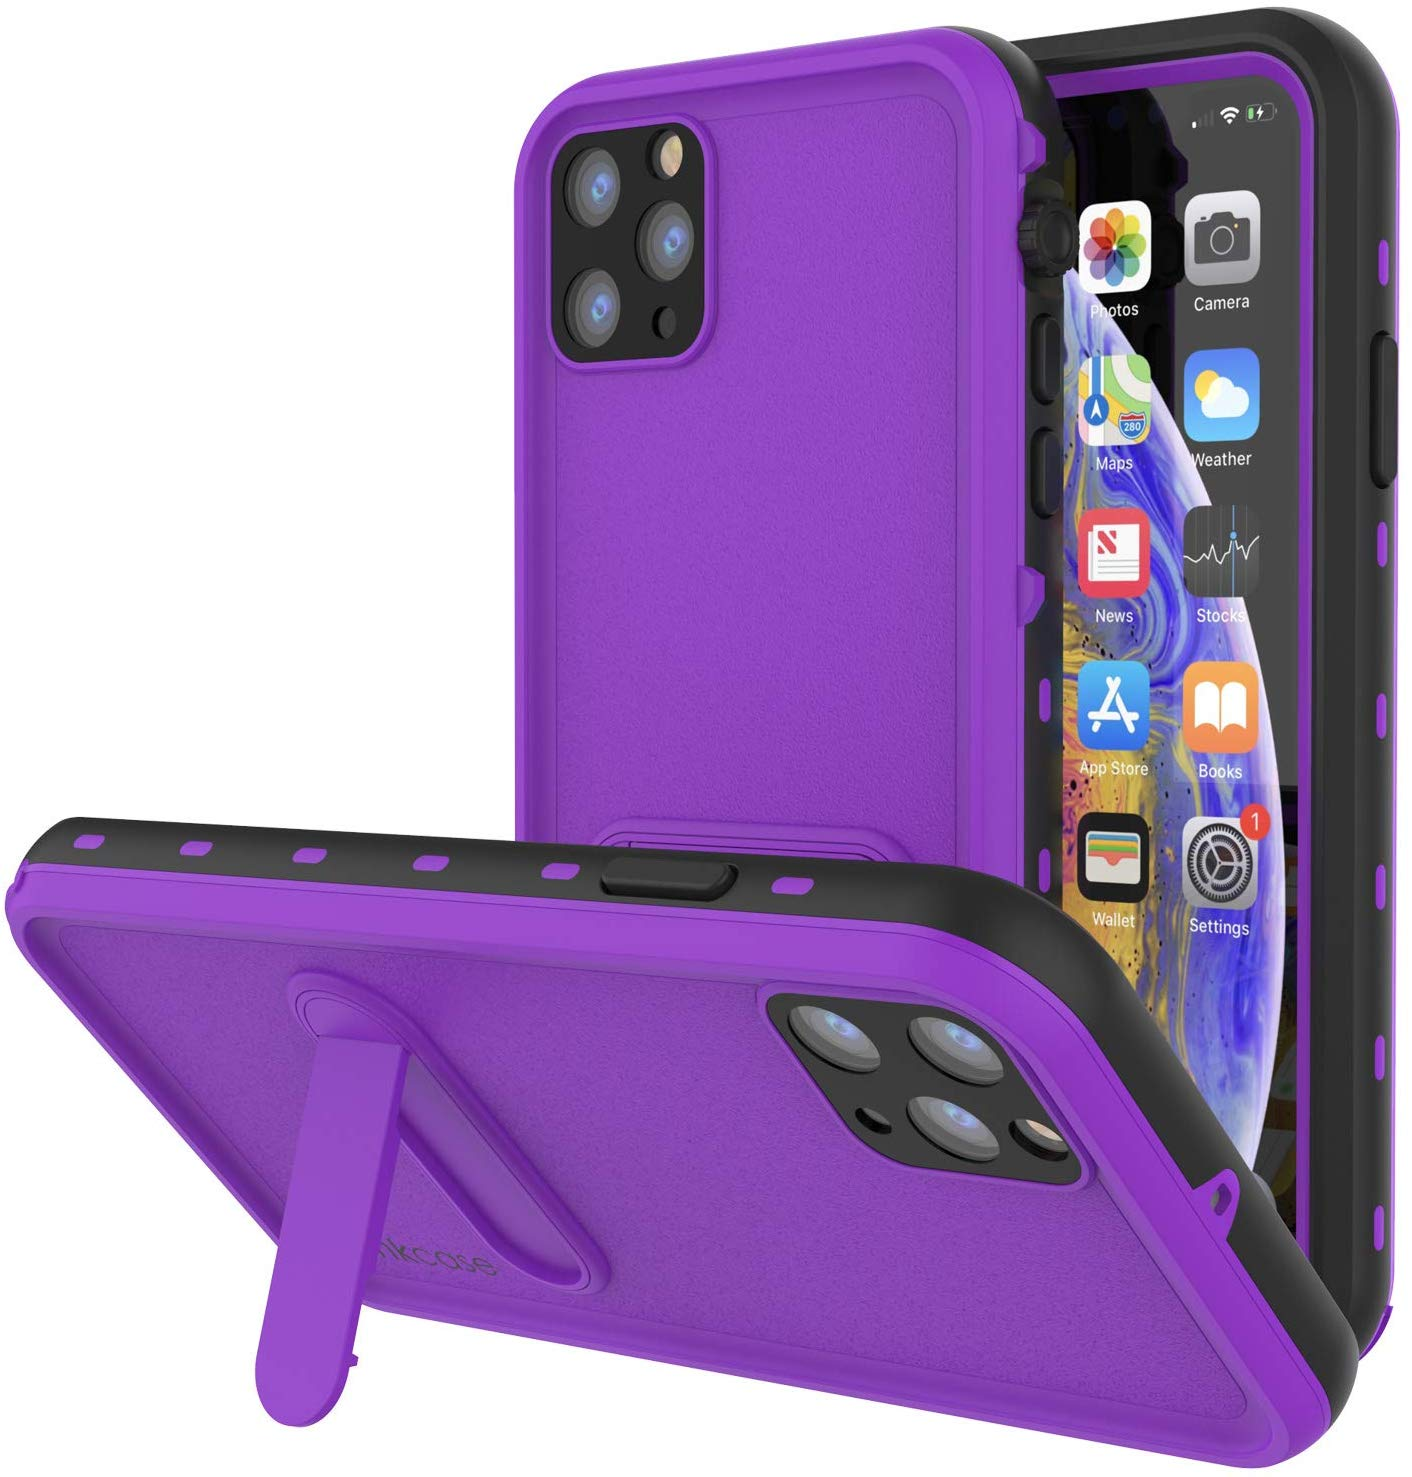 iPhone 11 Pro Max Waterproof Case, Punkcase [KickStud Series] Armor Cover [Purple]